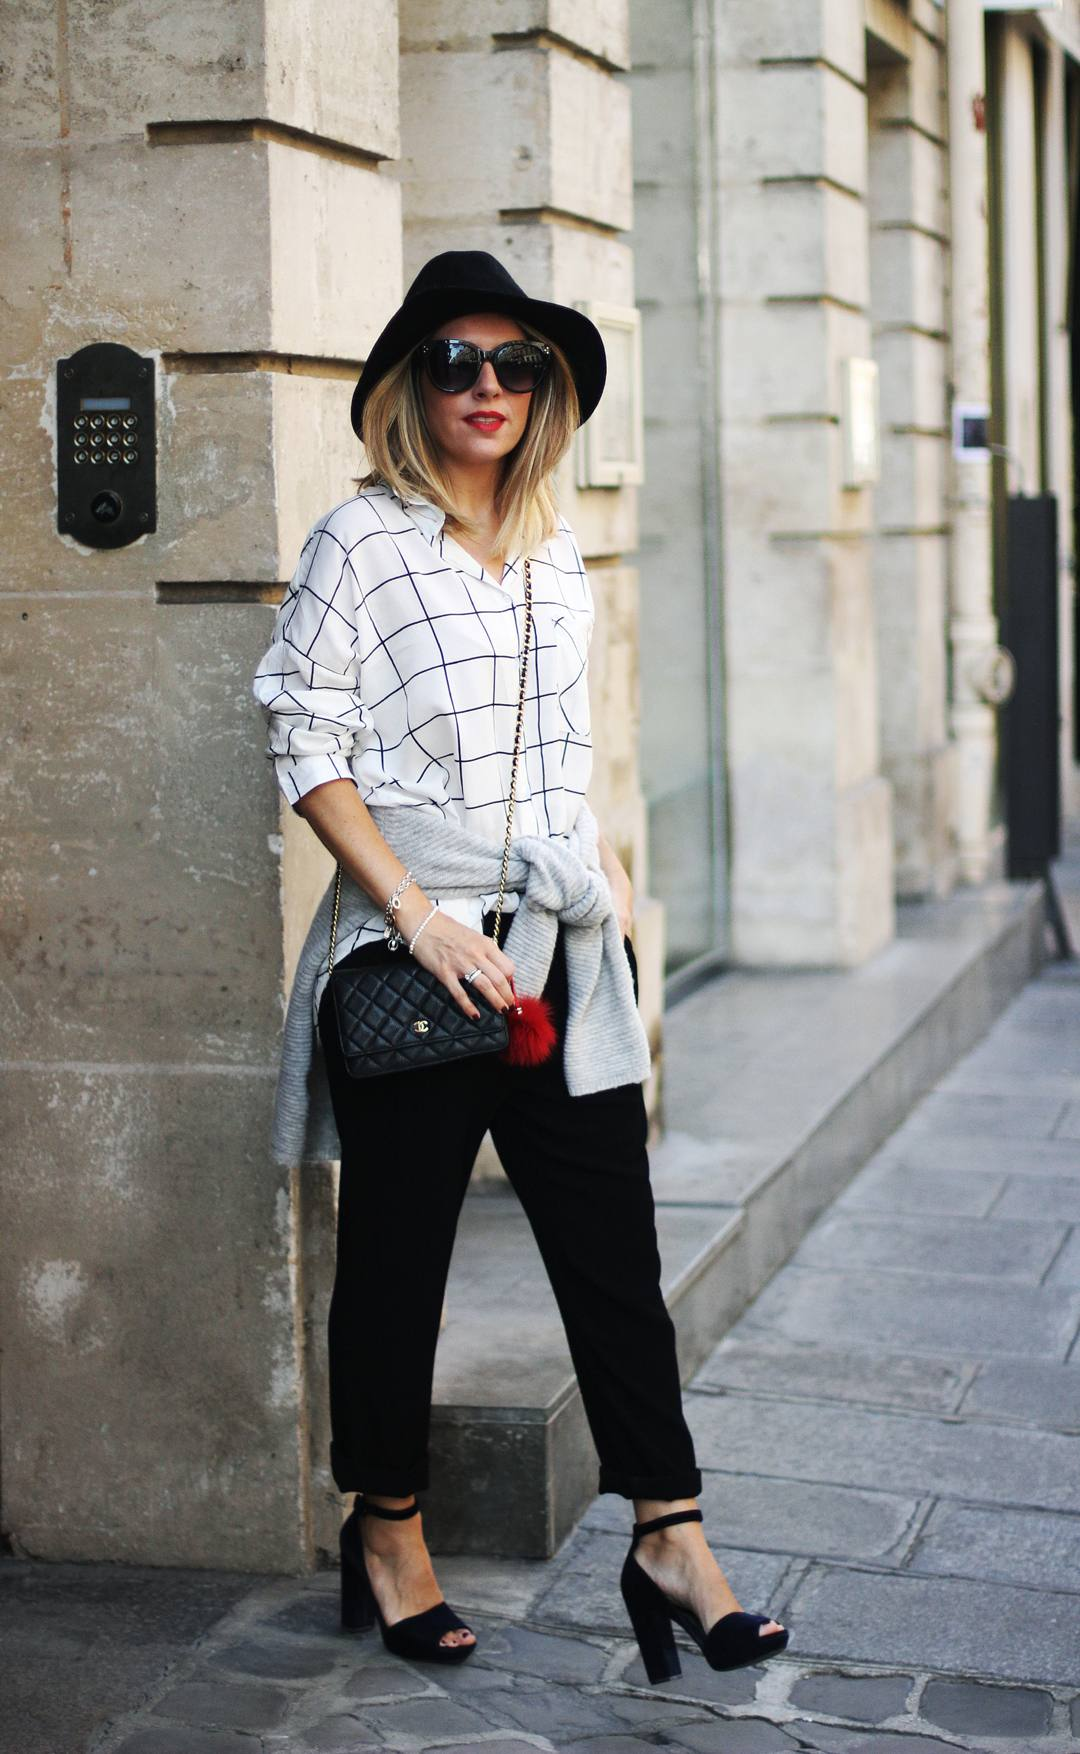 Paris-fashion-blogger-mesvoyagesaparis-2015 (4)